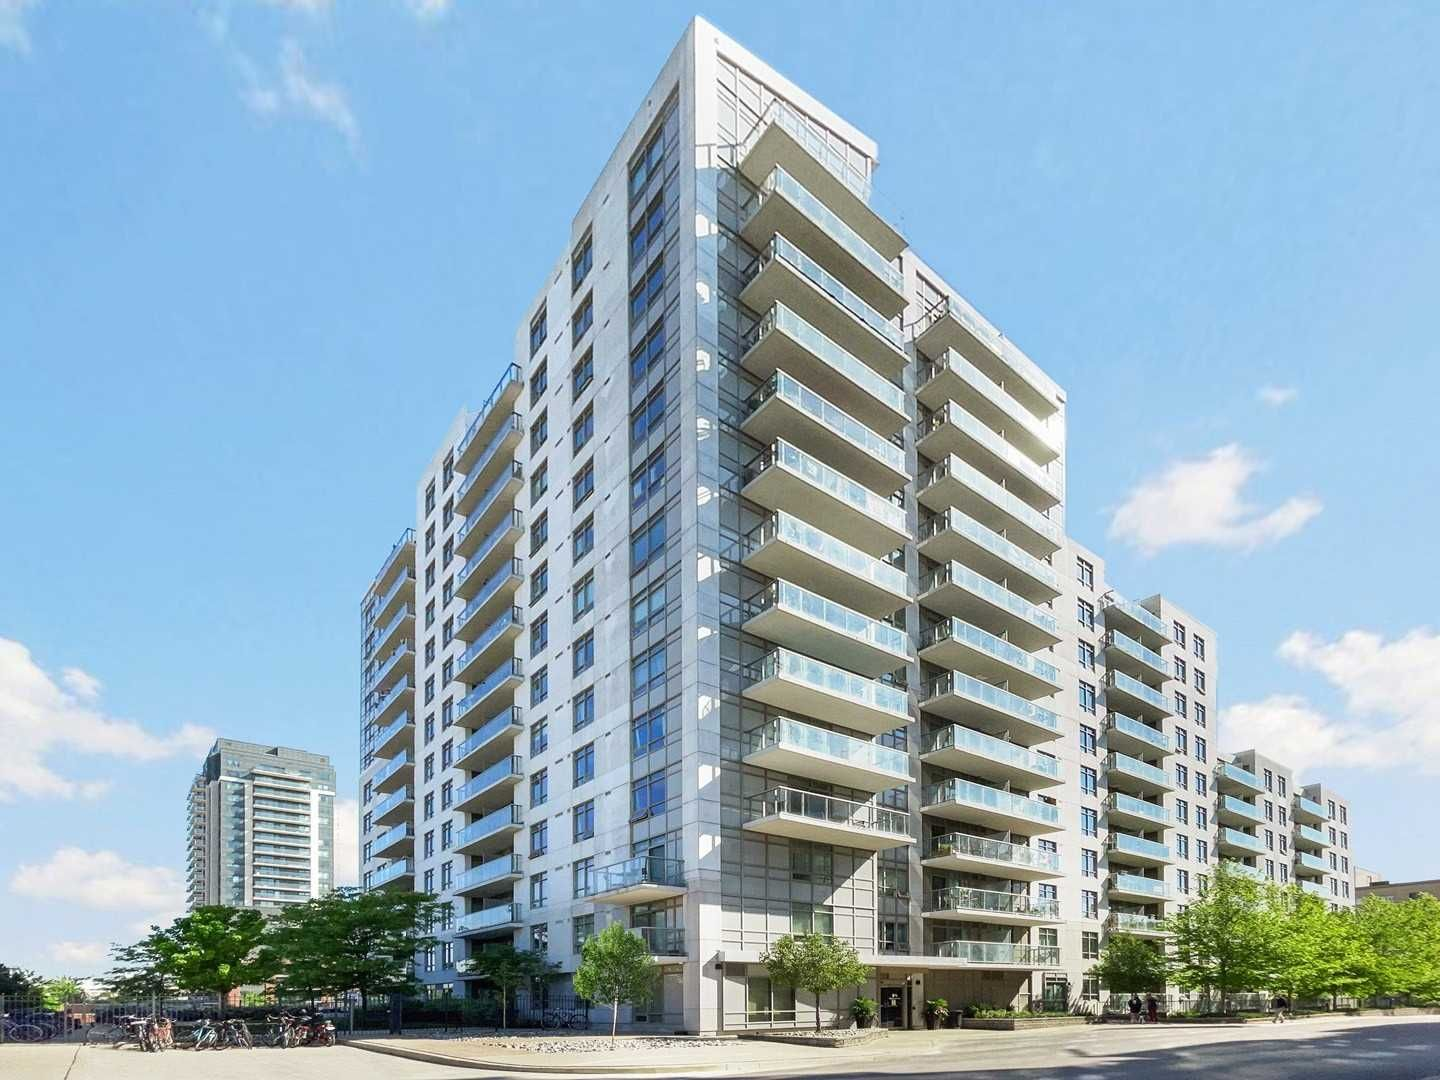 816 Lansdowne Ave, unit 826 for sale in Toronto - image #1